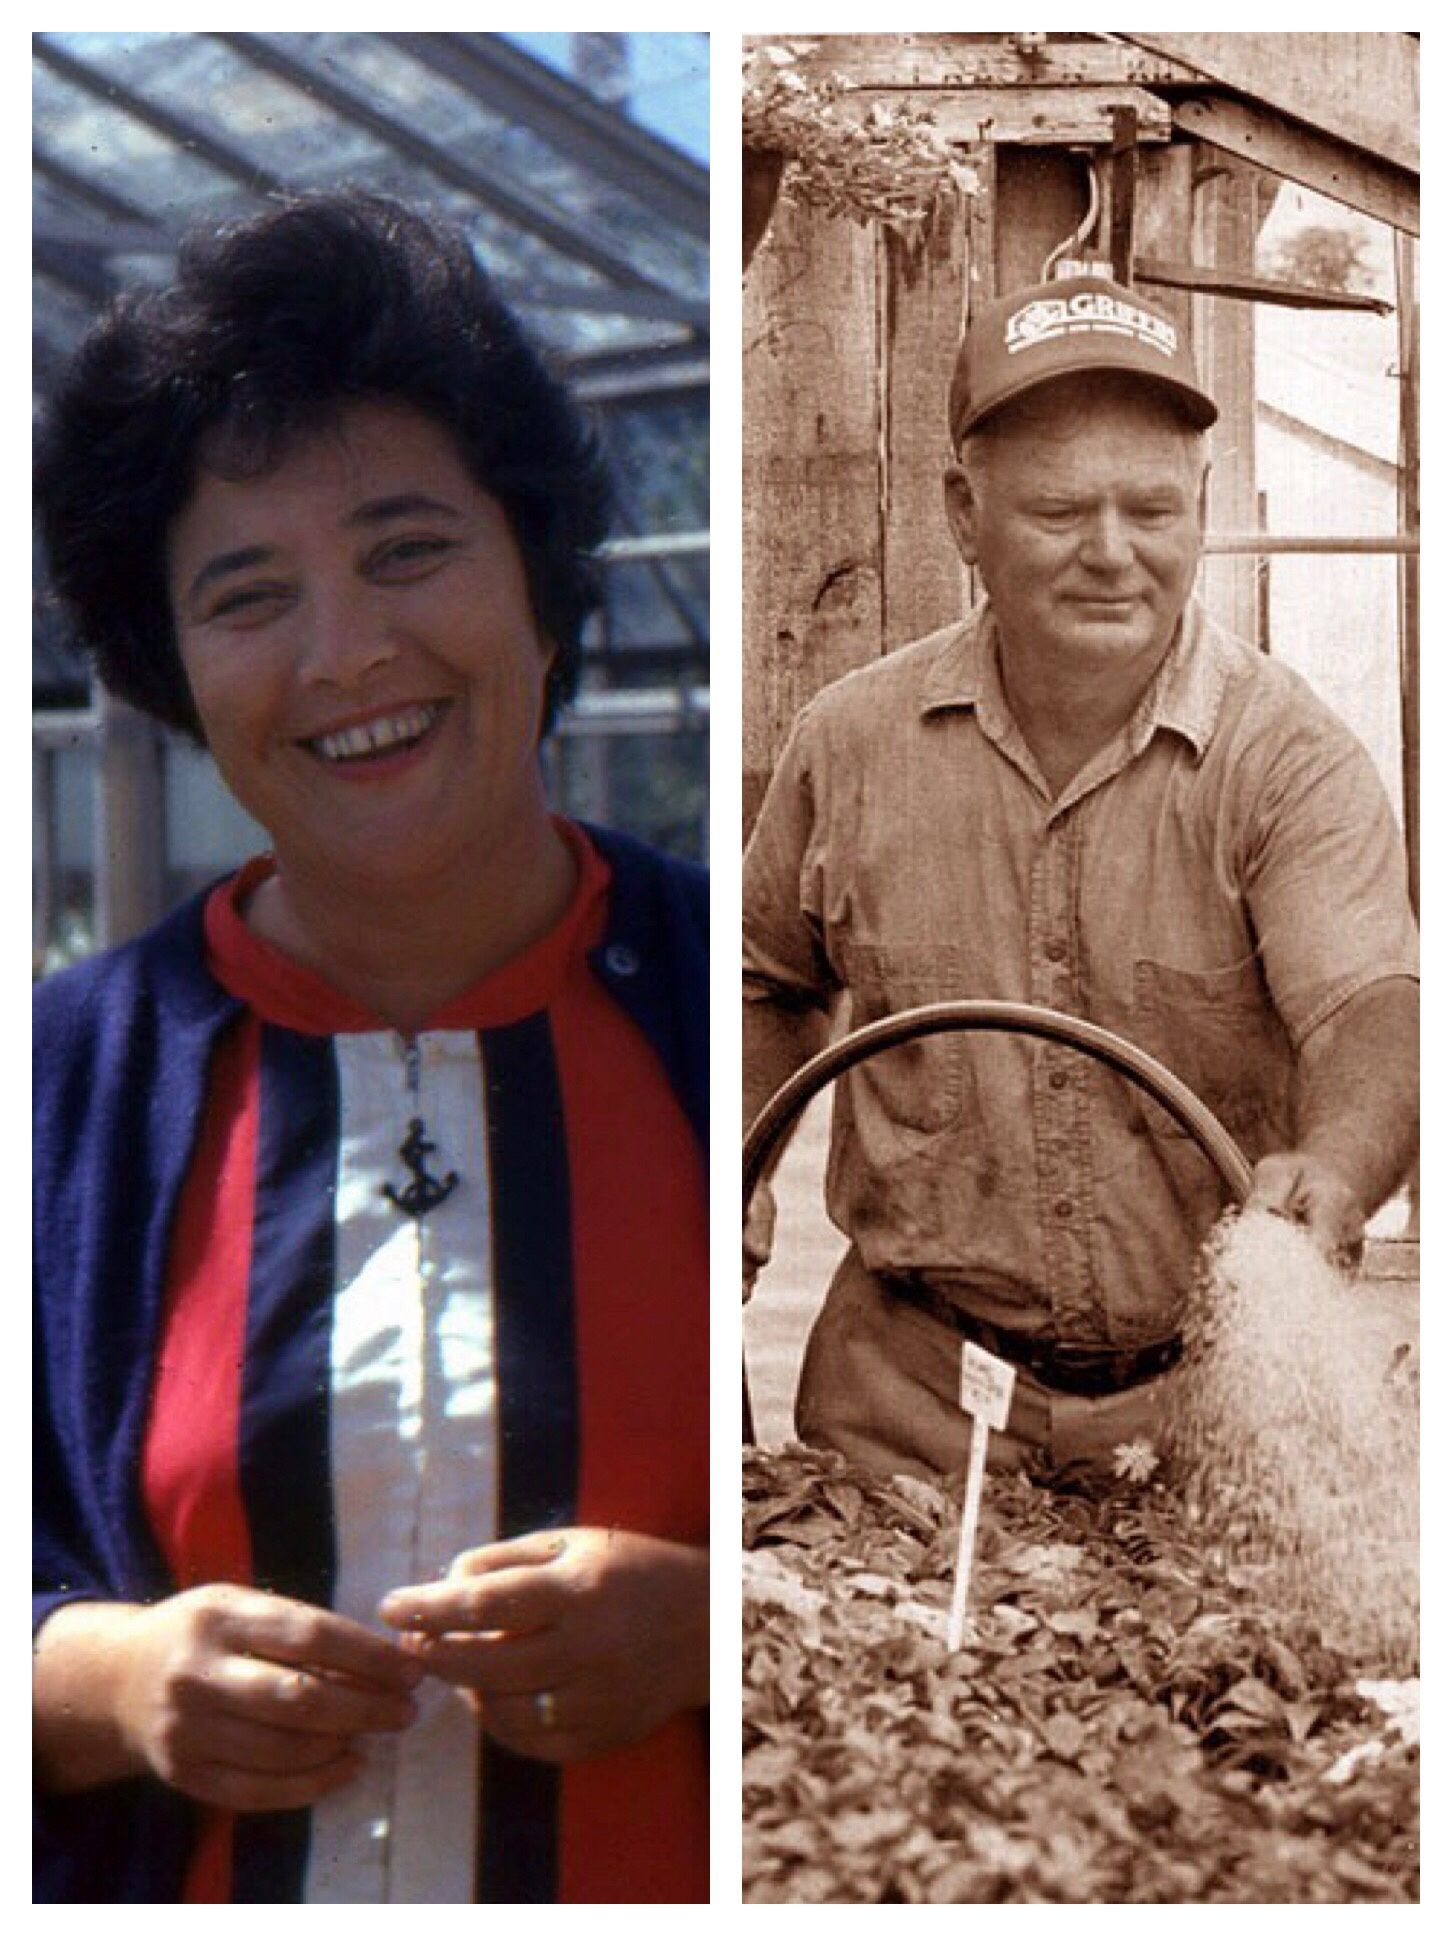 in the twentieth century - Raymond Peckham and his wife Clara continued the family farm, focused mainly on root vegetables. In the 1960s, their son Albert and his wife Mary Jane pushed the business towards house and garden plants. Their dedication proved fruitful, as the business grew and became a trusted name in the community for all things plants.